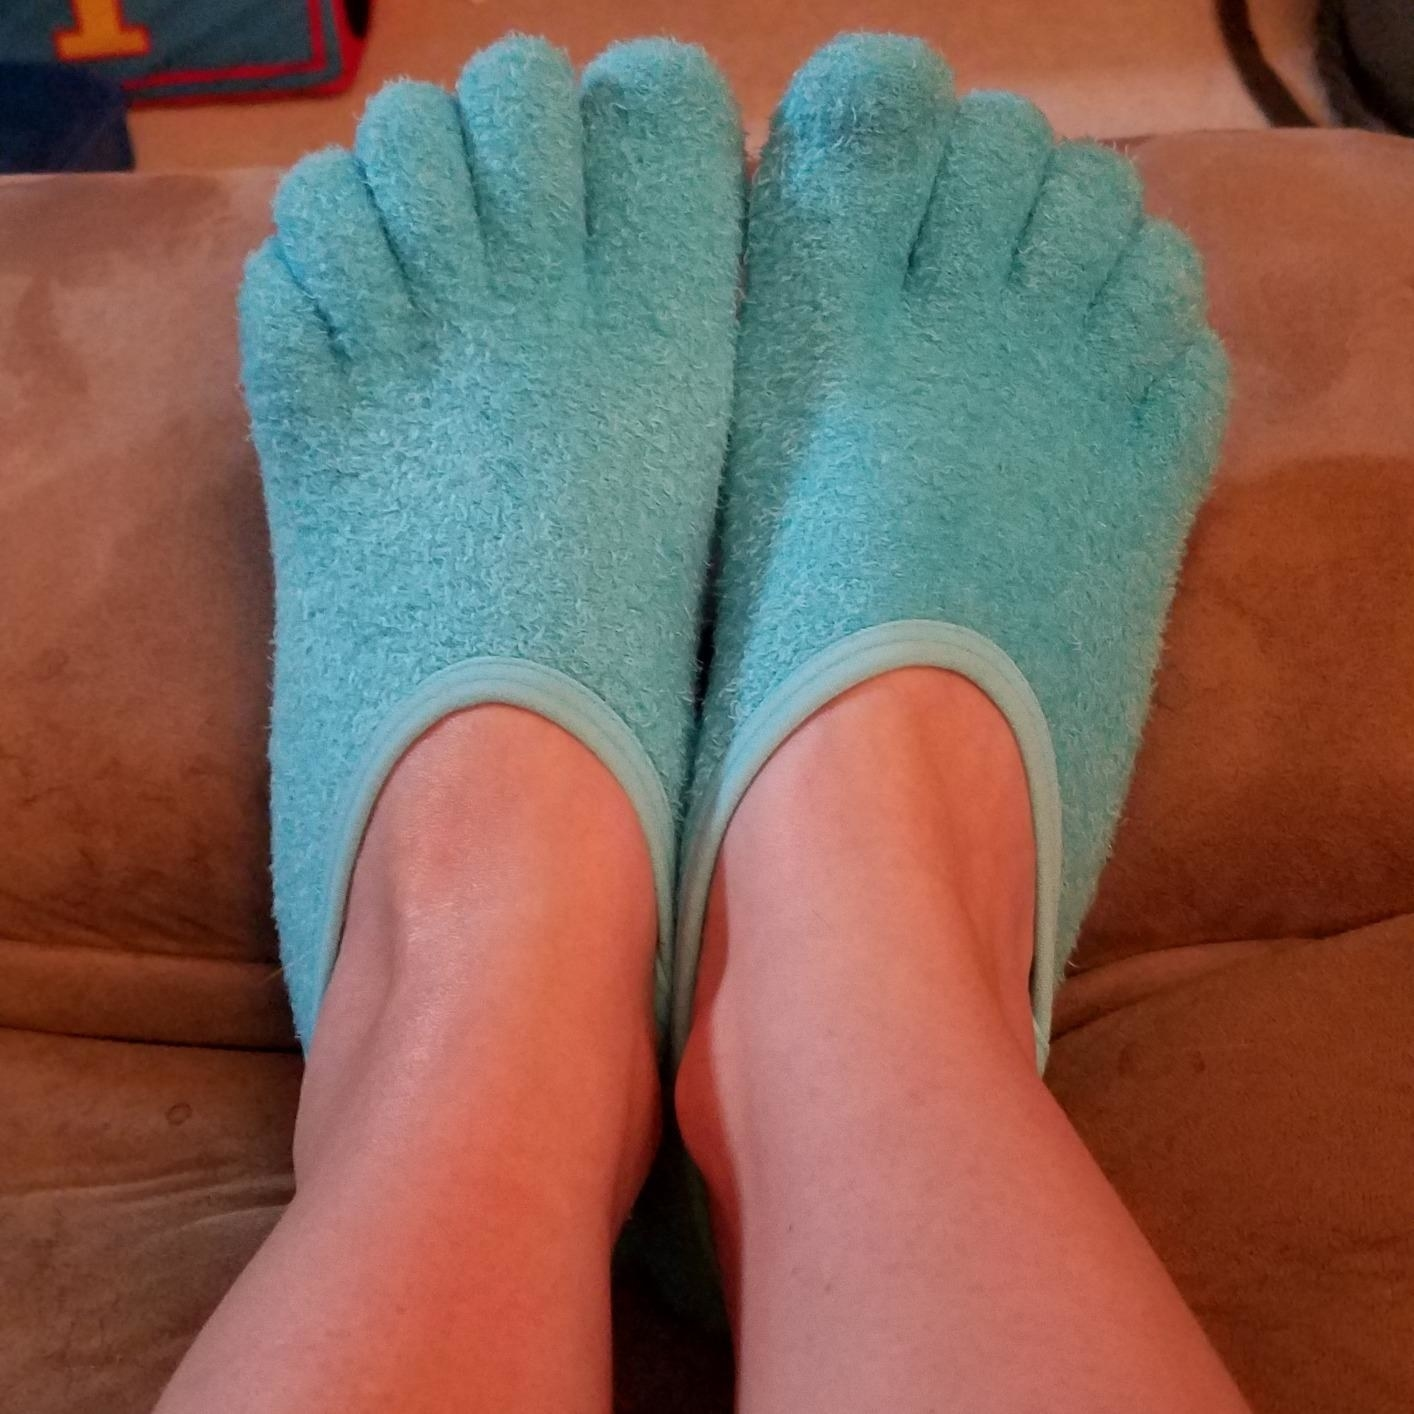 A reviewer's feet in the blue toe socks